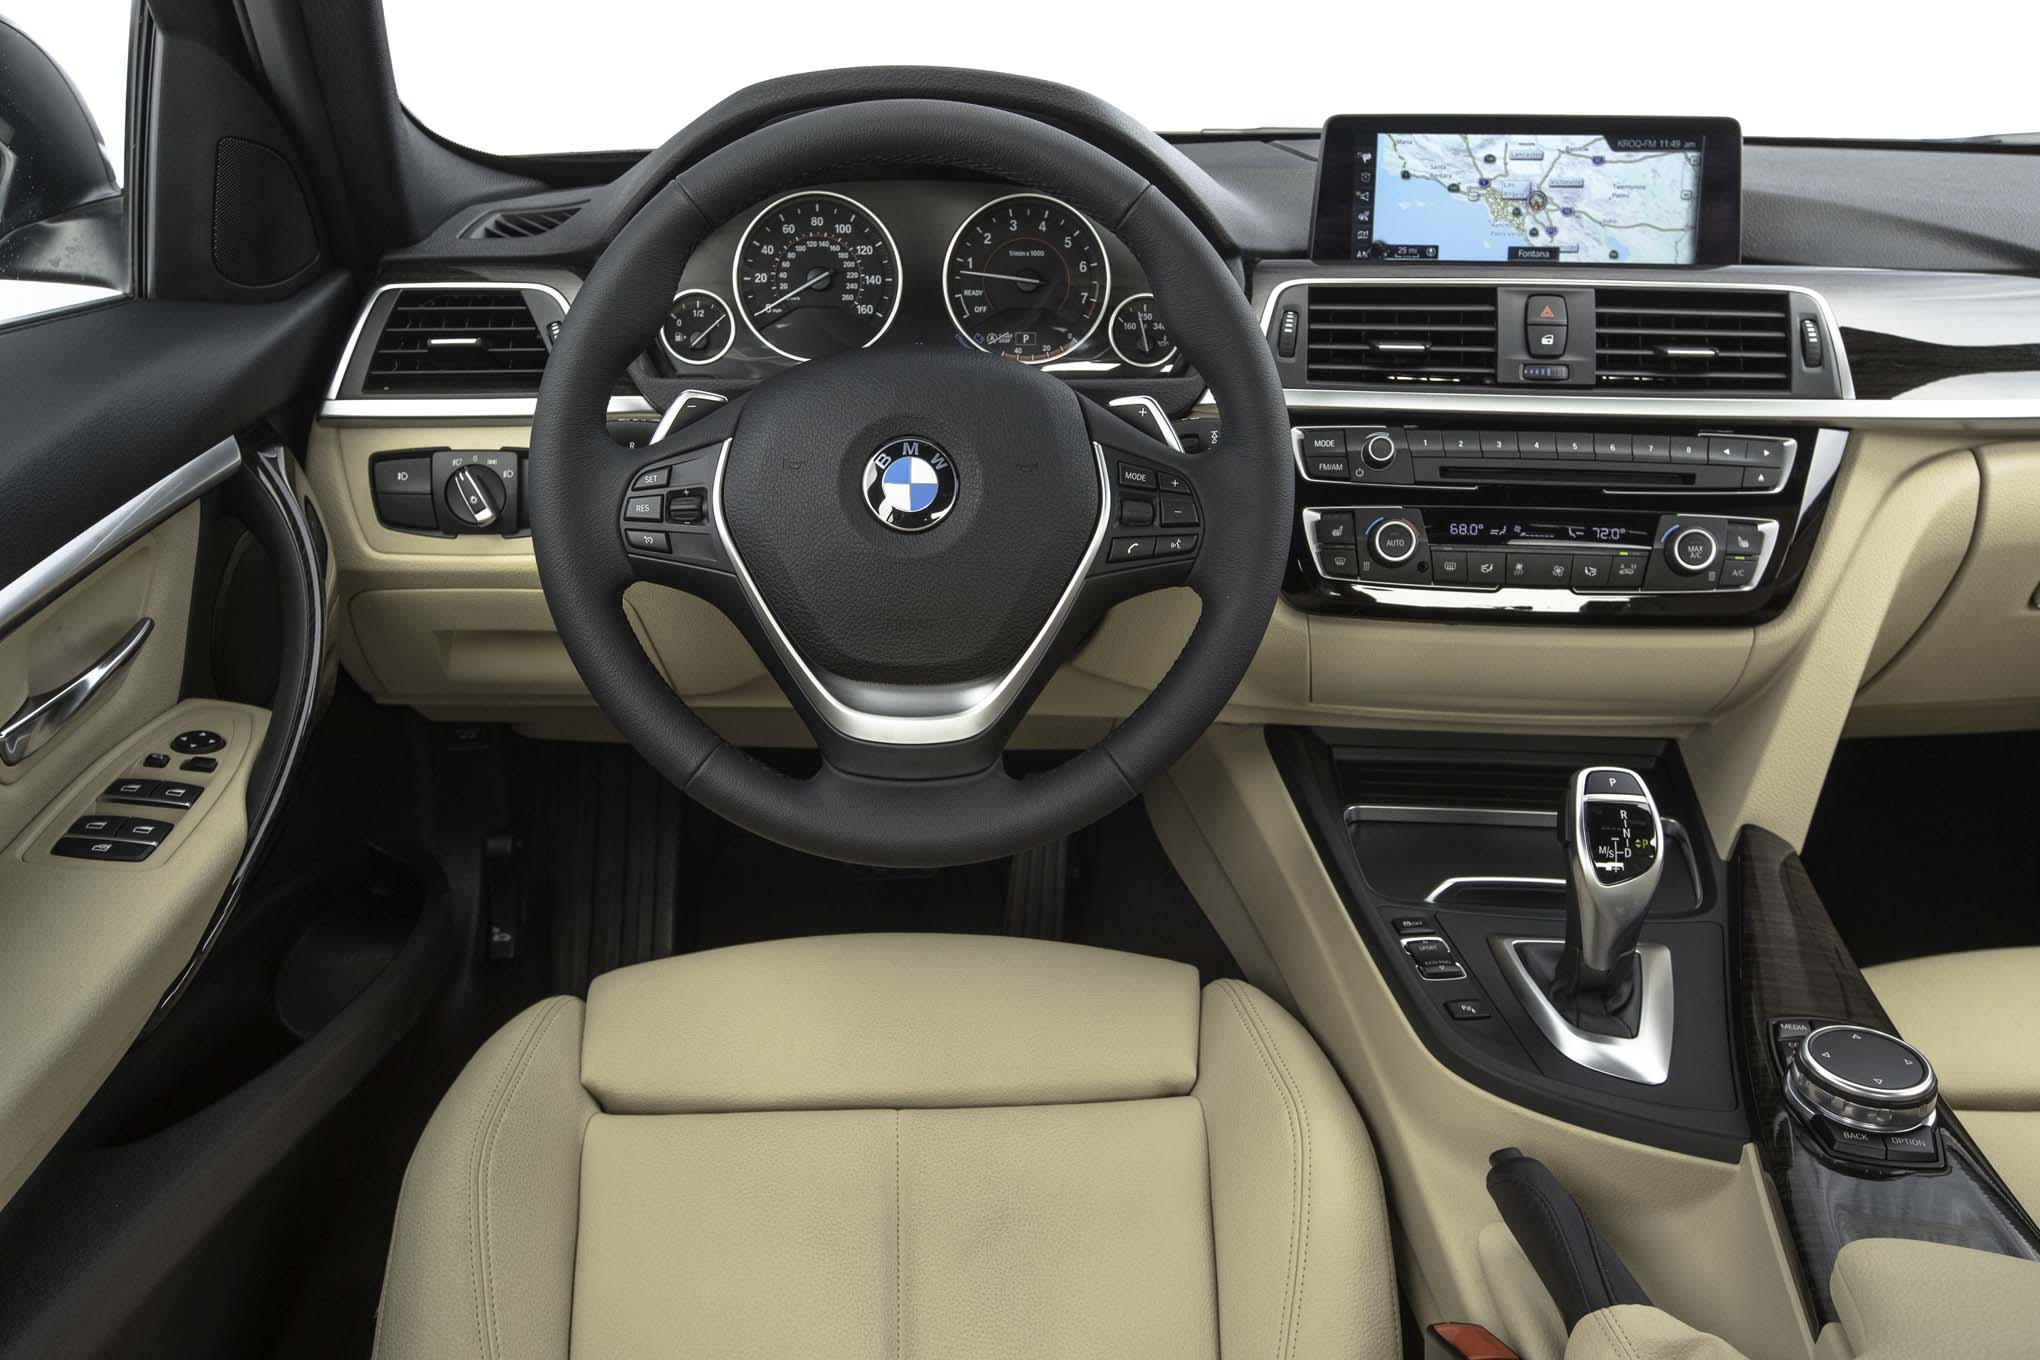 2017 BMW 330i Sedan Interior Driver Cockpit Steering And Dash (View 51 of 59)